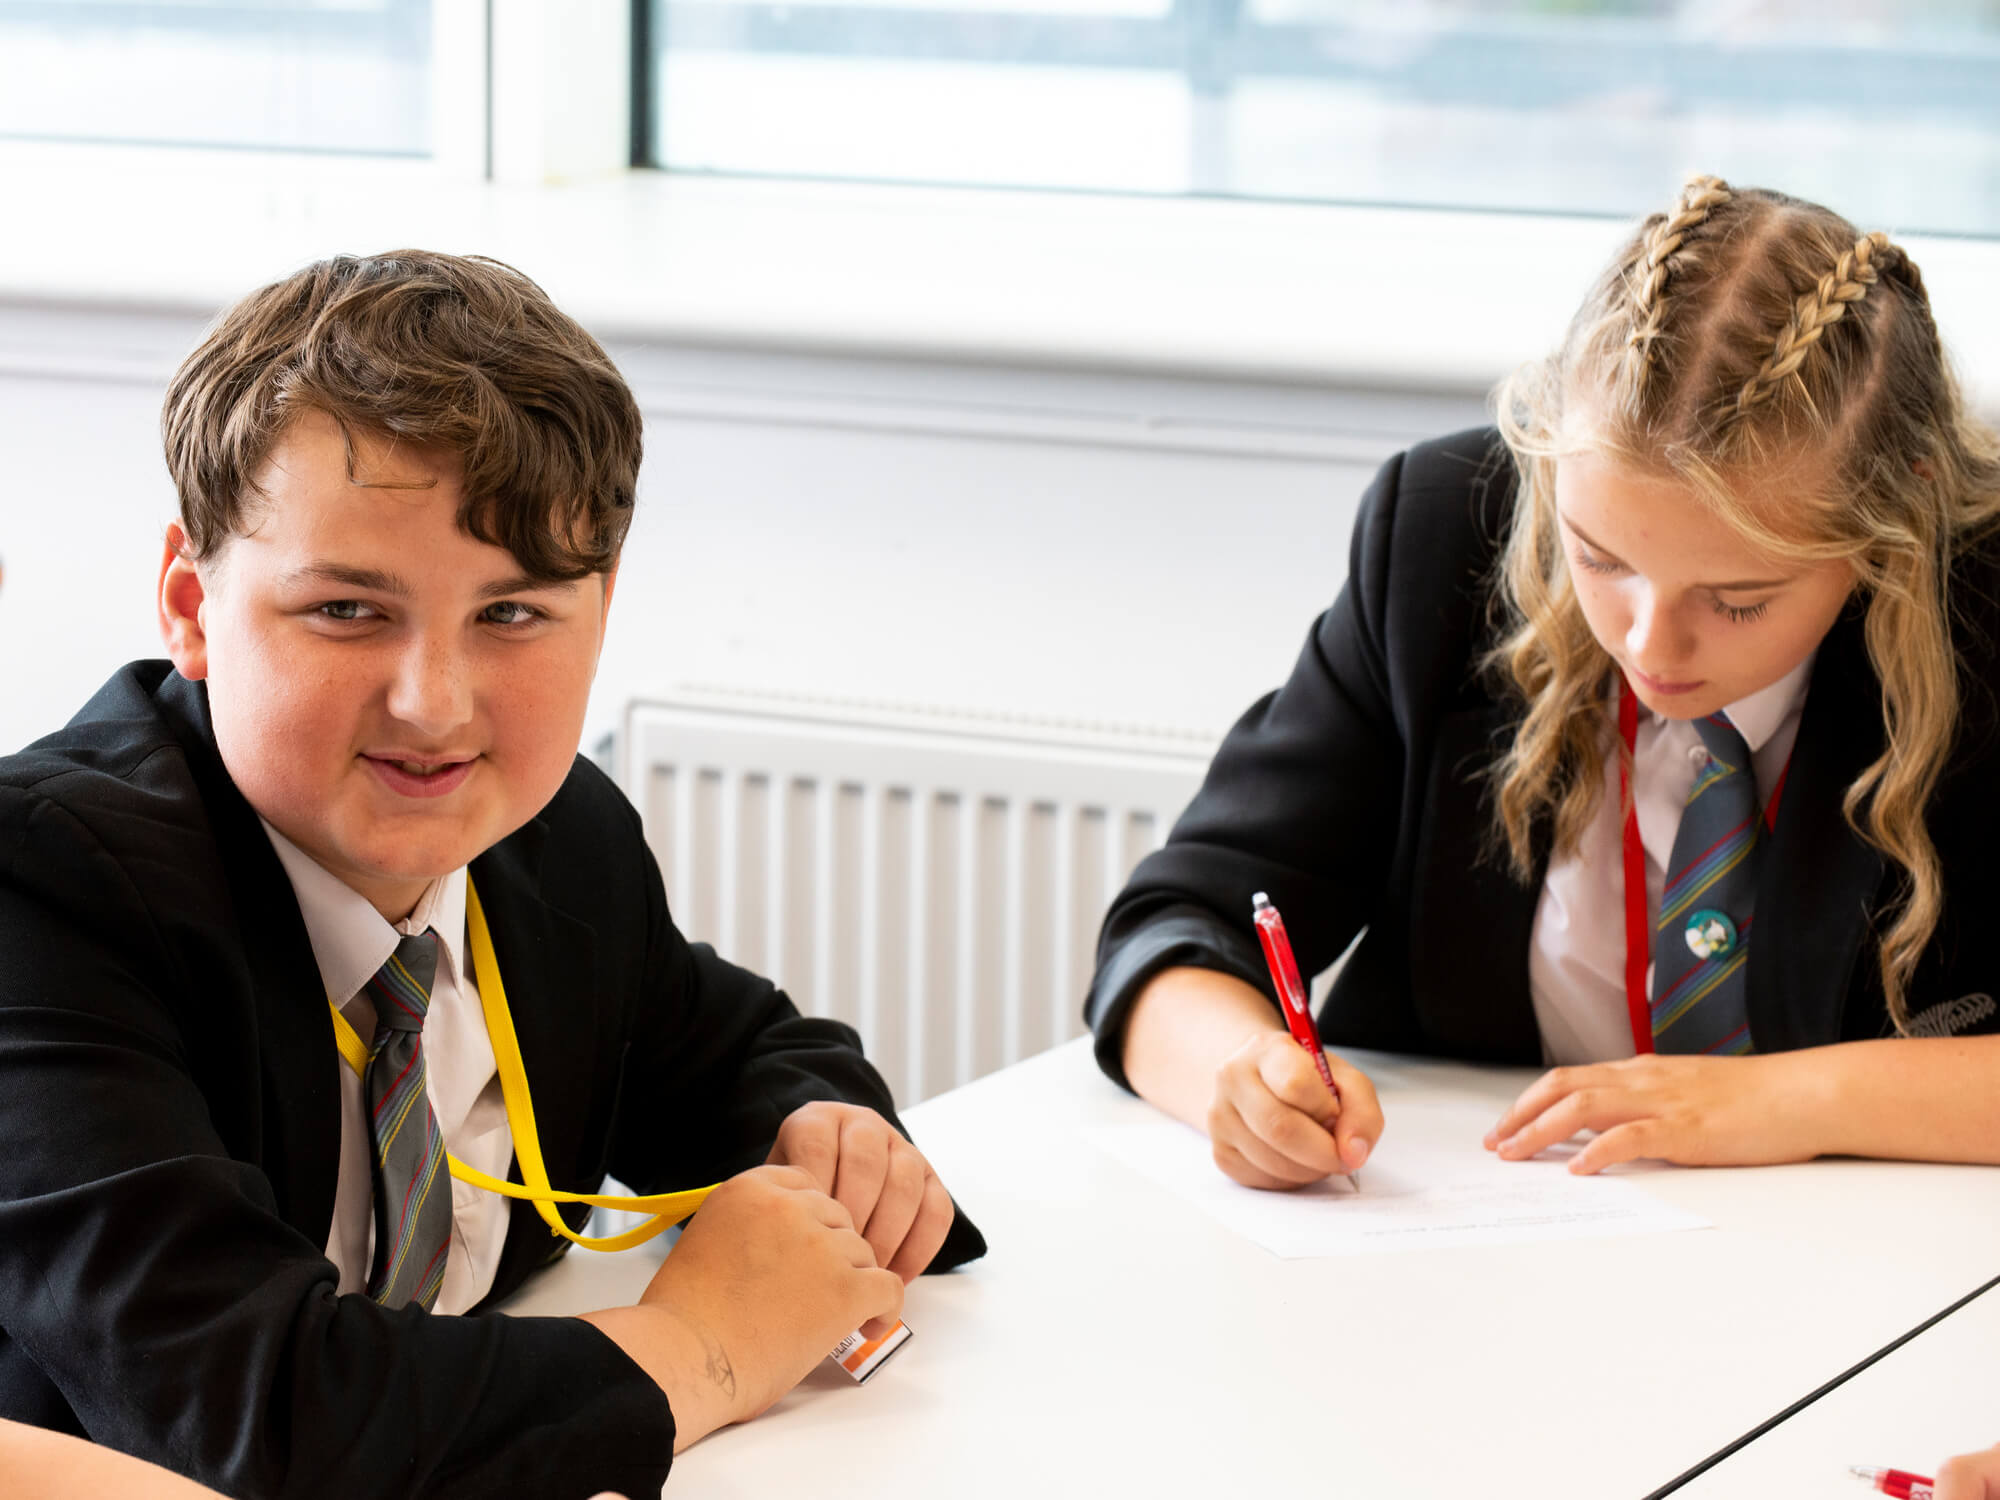 Two students around a table completing an activity.